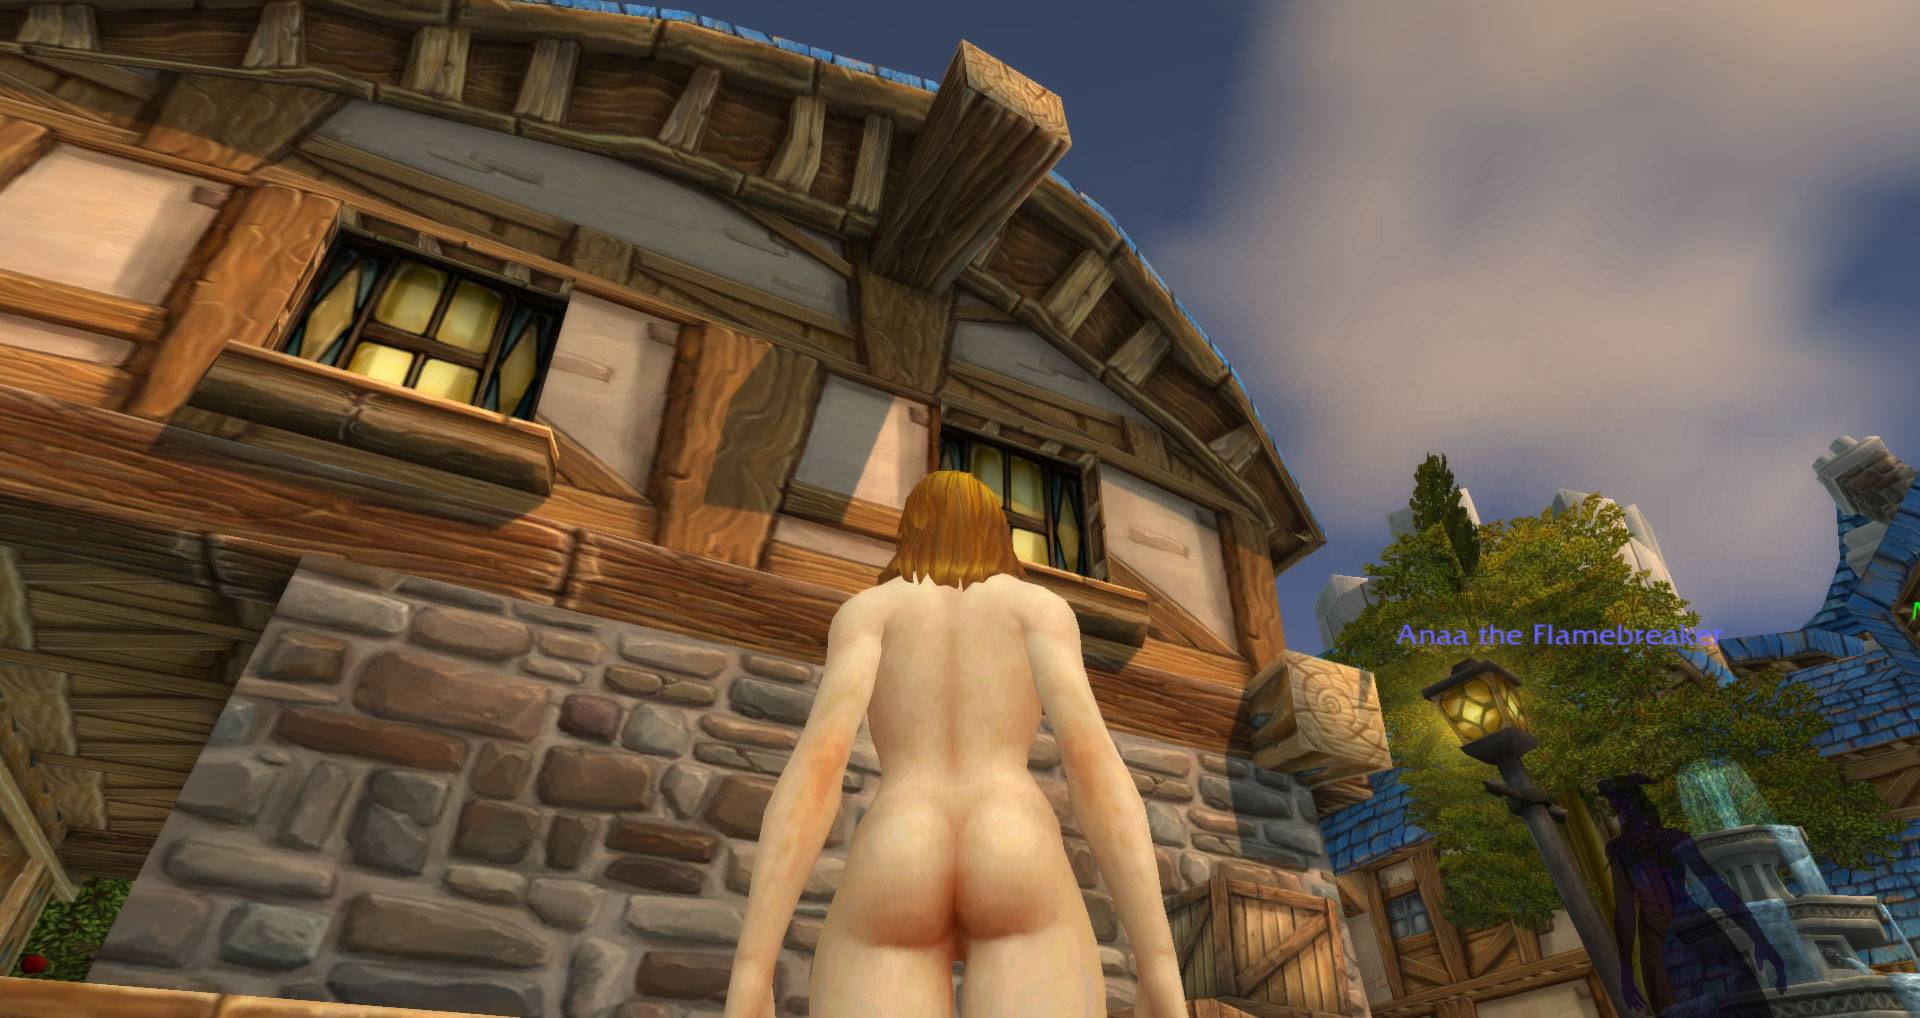 World of warcraft nud mods adult images